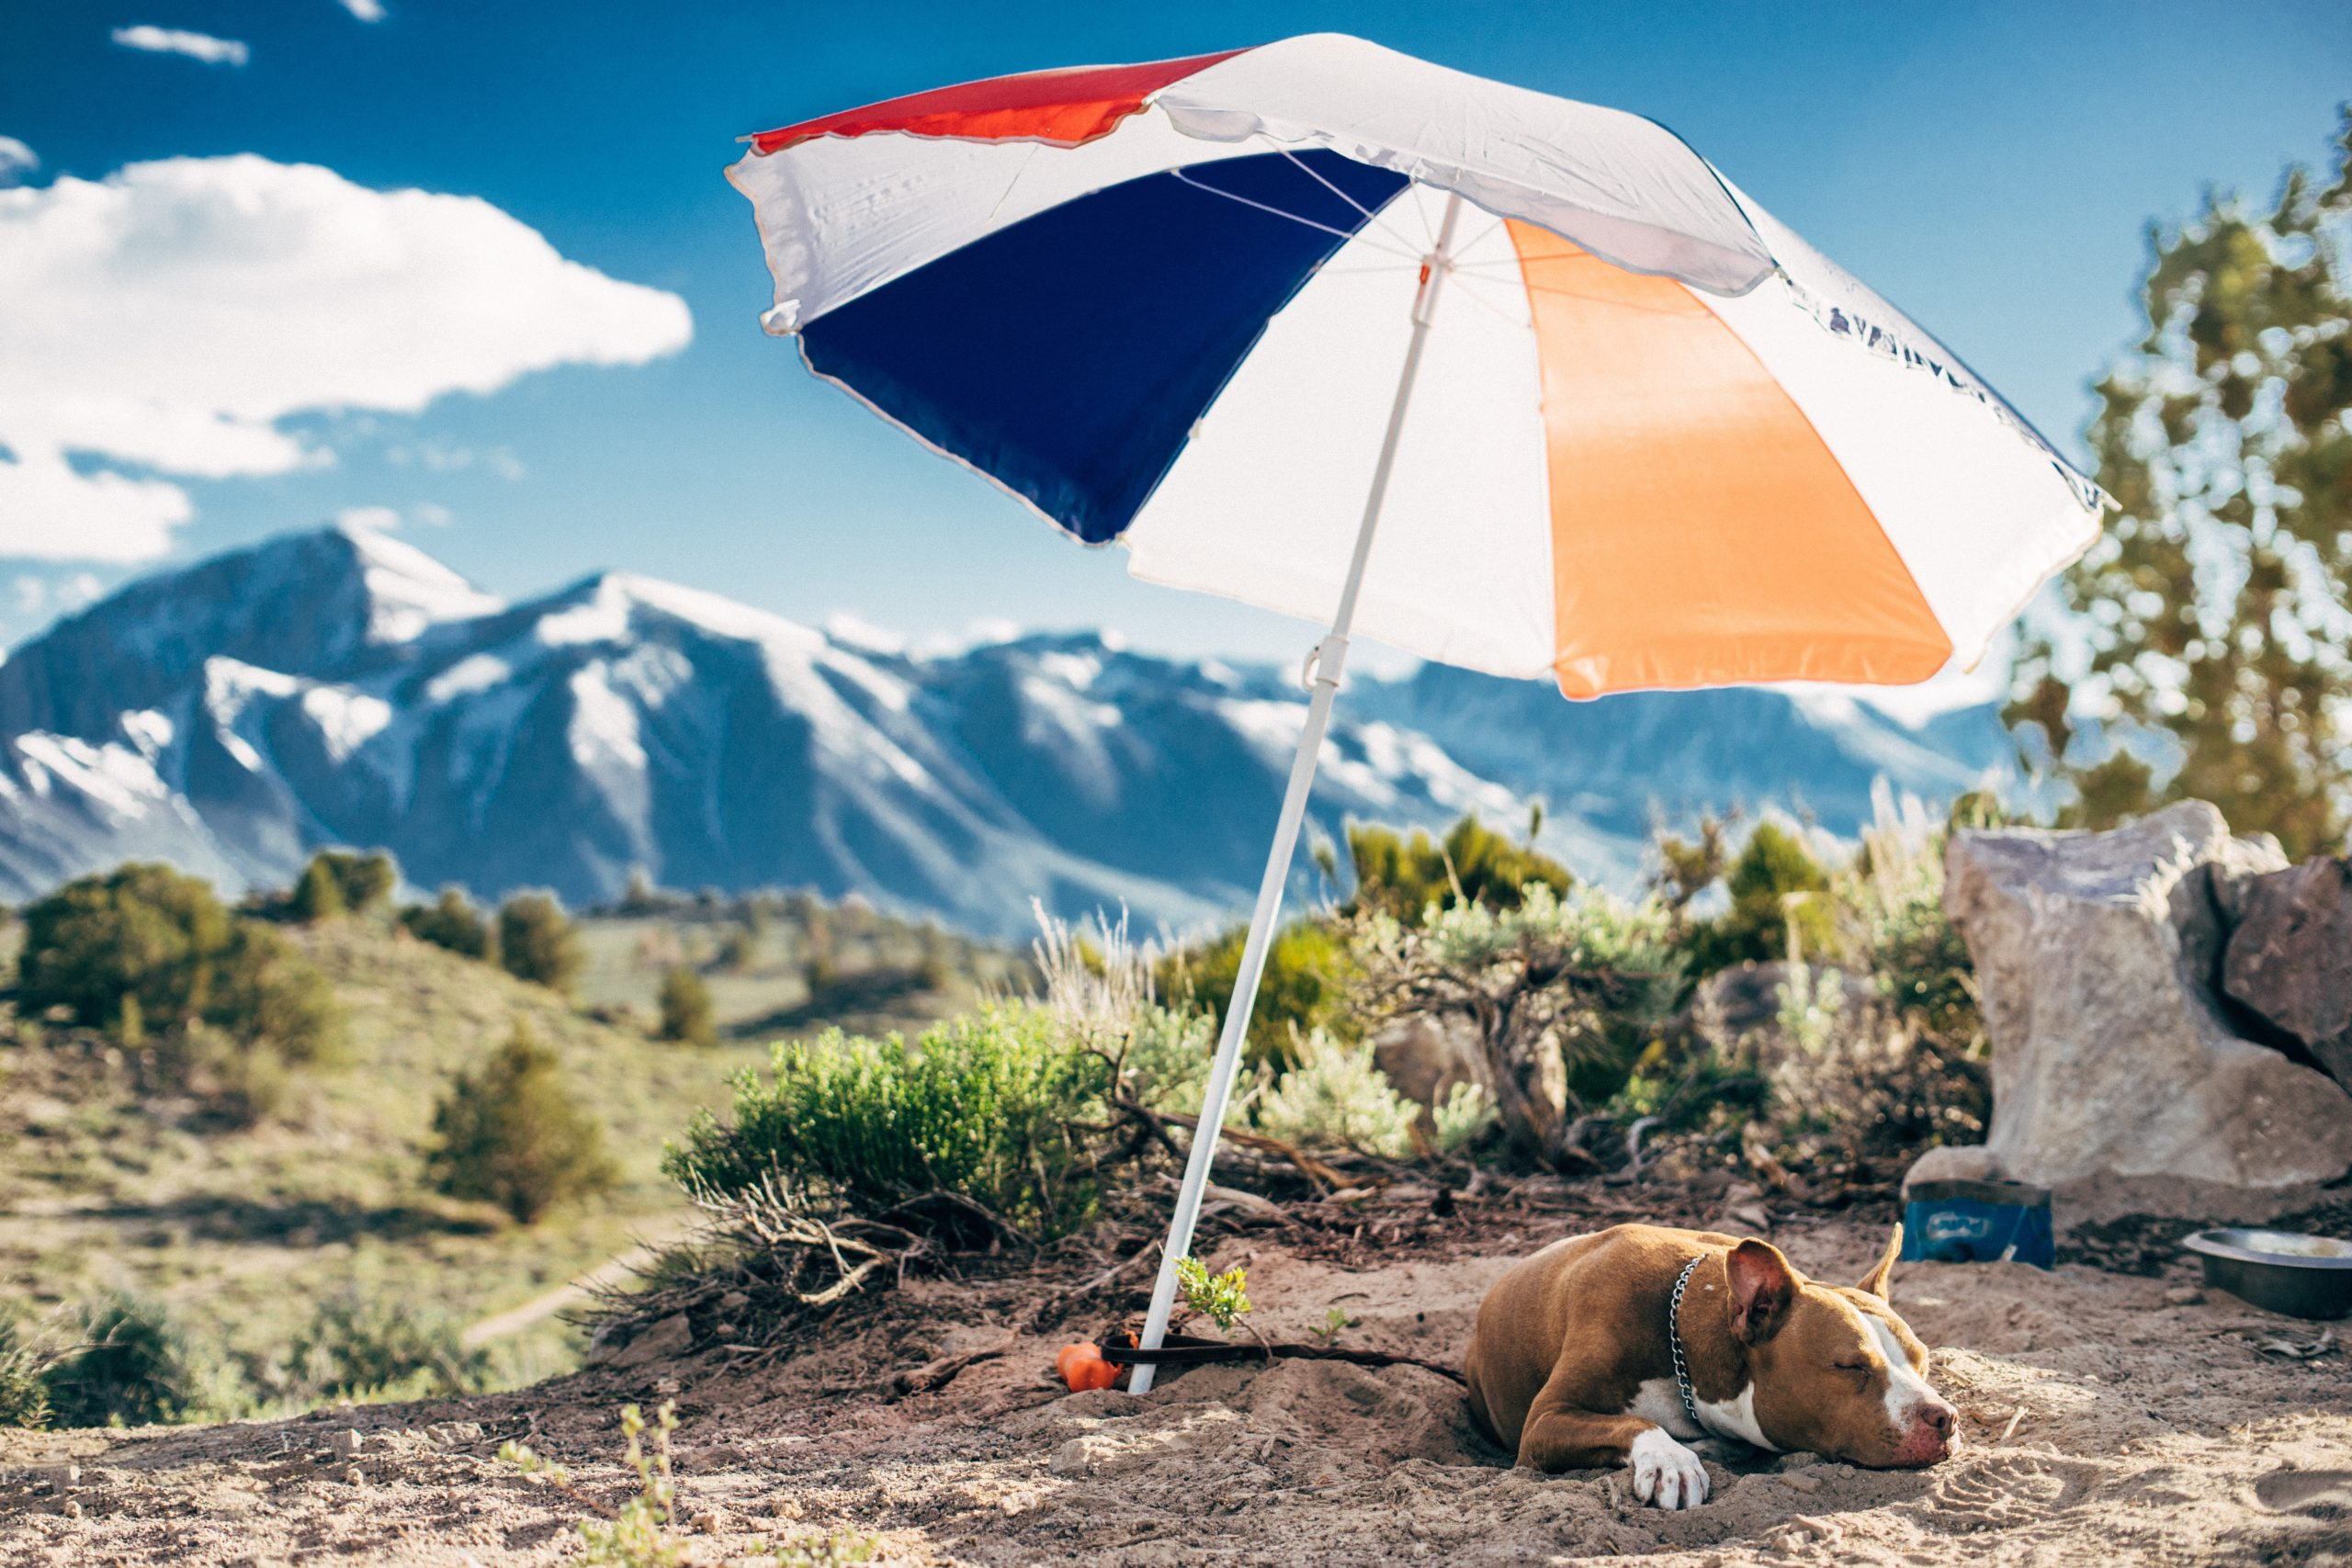 Summer Pet Safety: How to Prepare Your Pets for Hot Weather